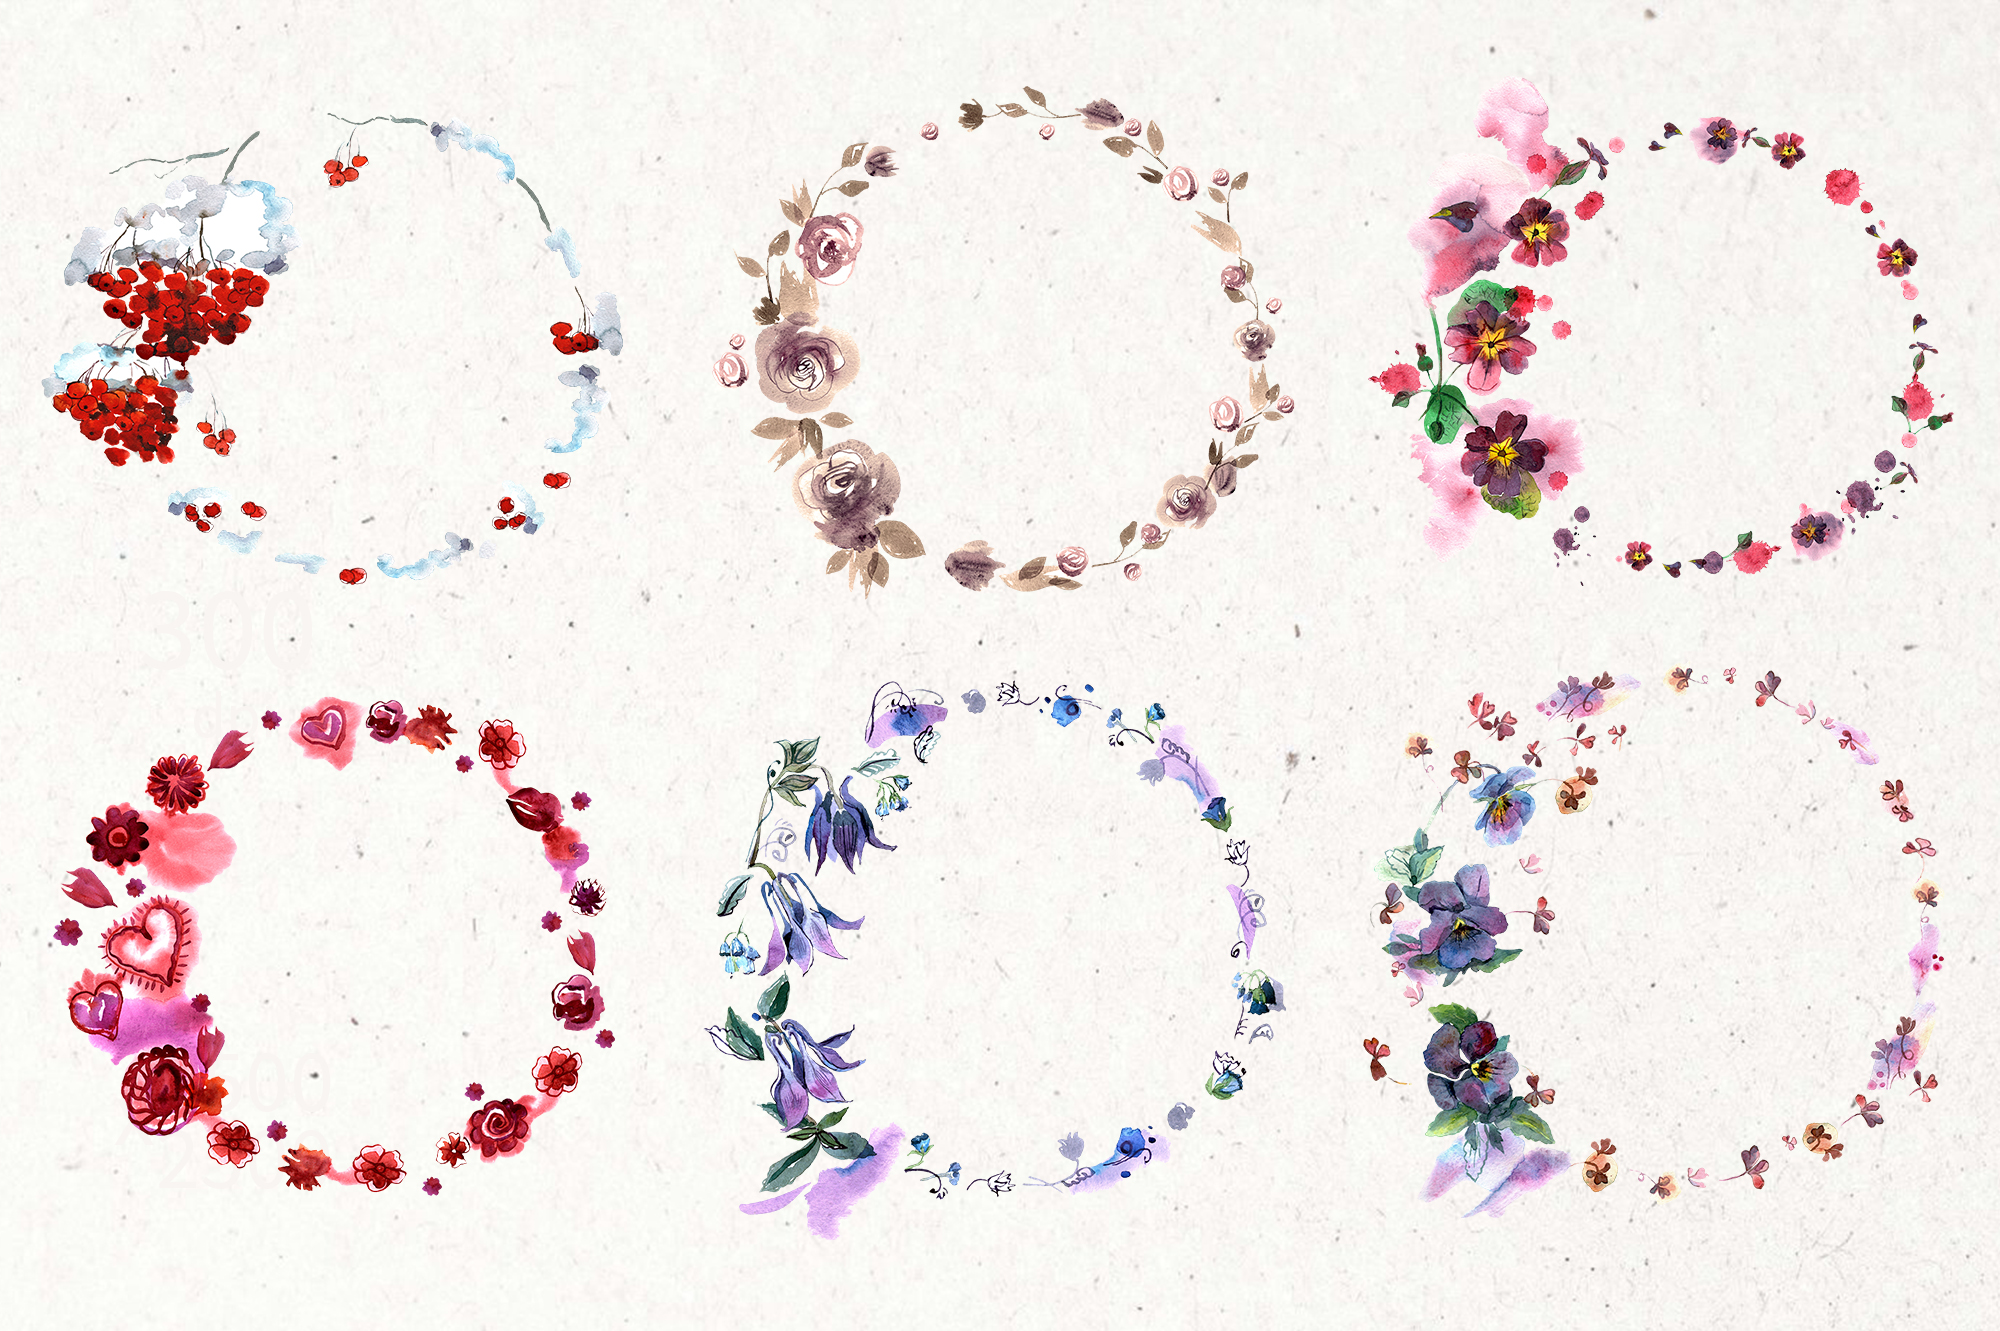 30 Watercolor Floral Wreaths example image 3